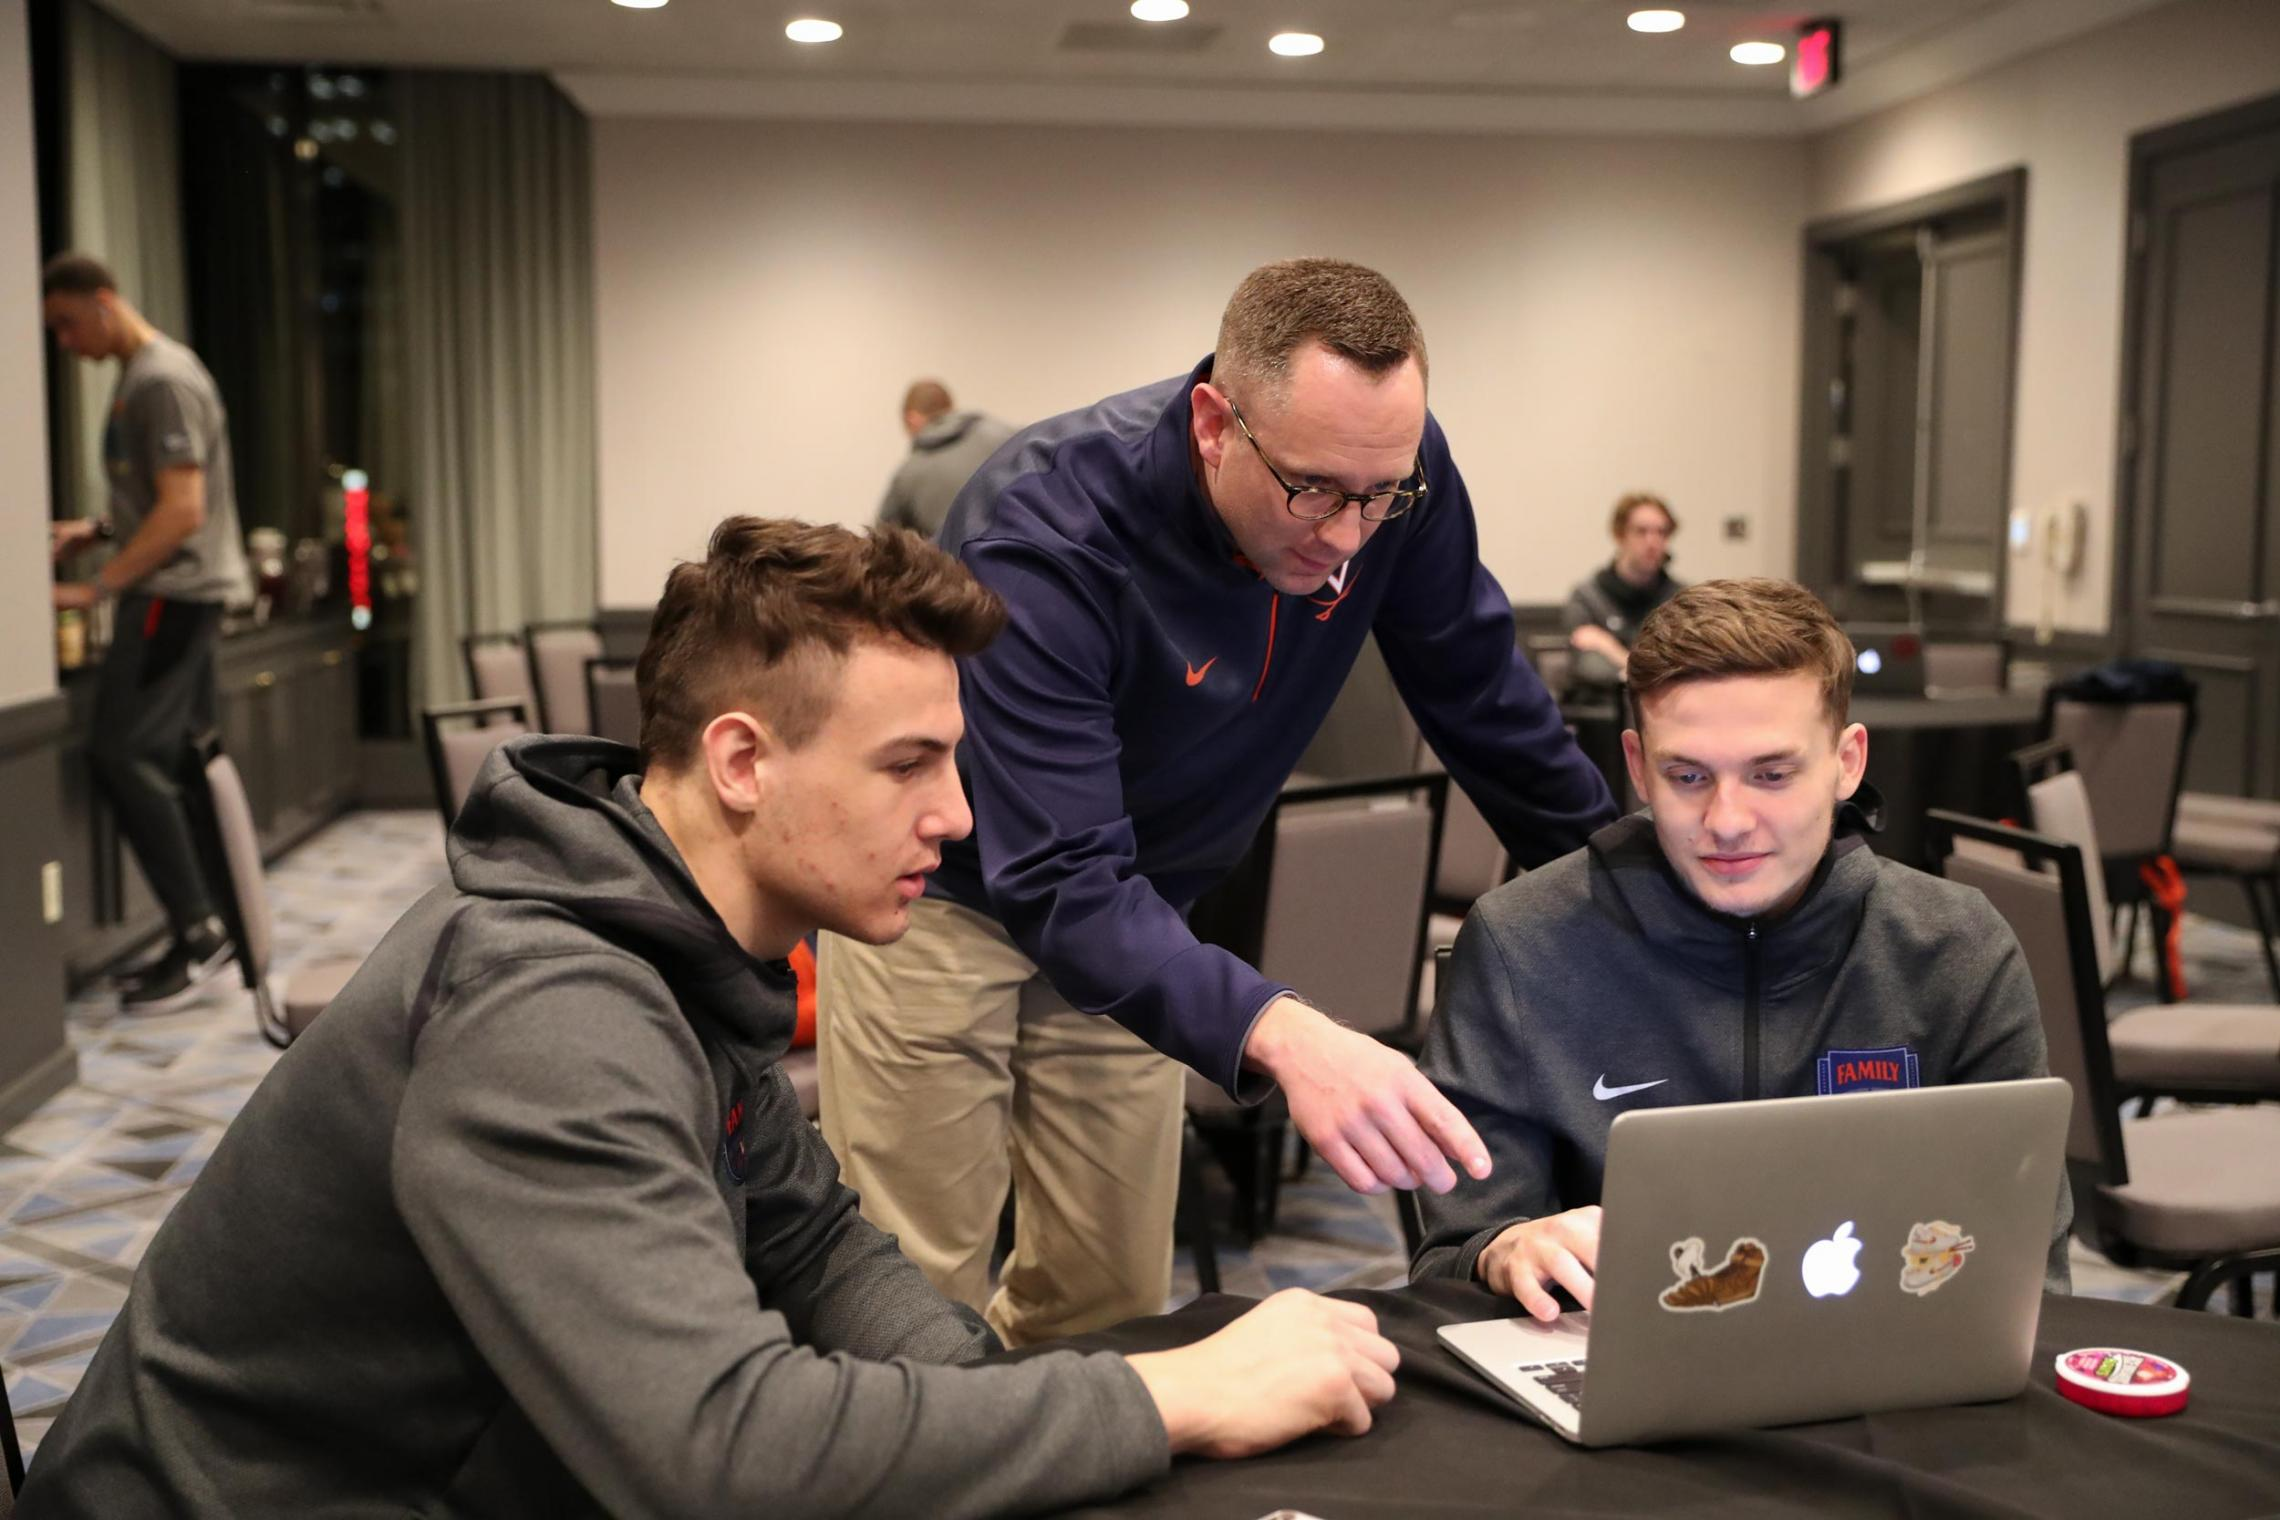 T.J. Grams, center, works with Francisco Caffaro, left, and Kyle Guy at a study hall Wednesday in Minneapolis. Grams helps players connect with professors and the academic resources they need to succeed. (Photo by Matt Riley, UVA Athletics)